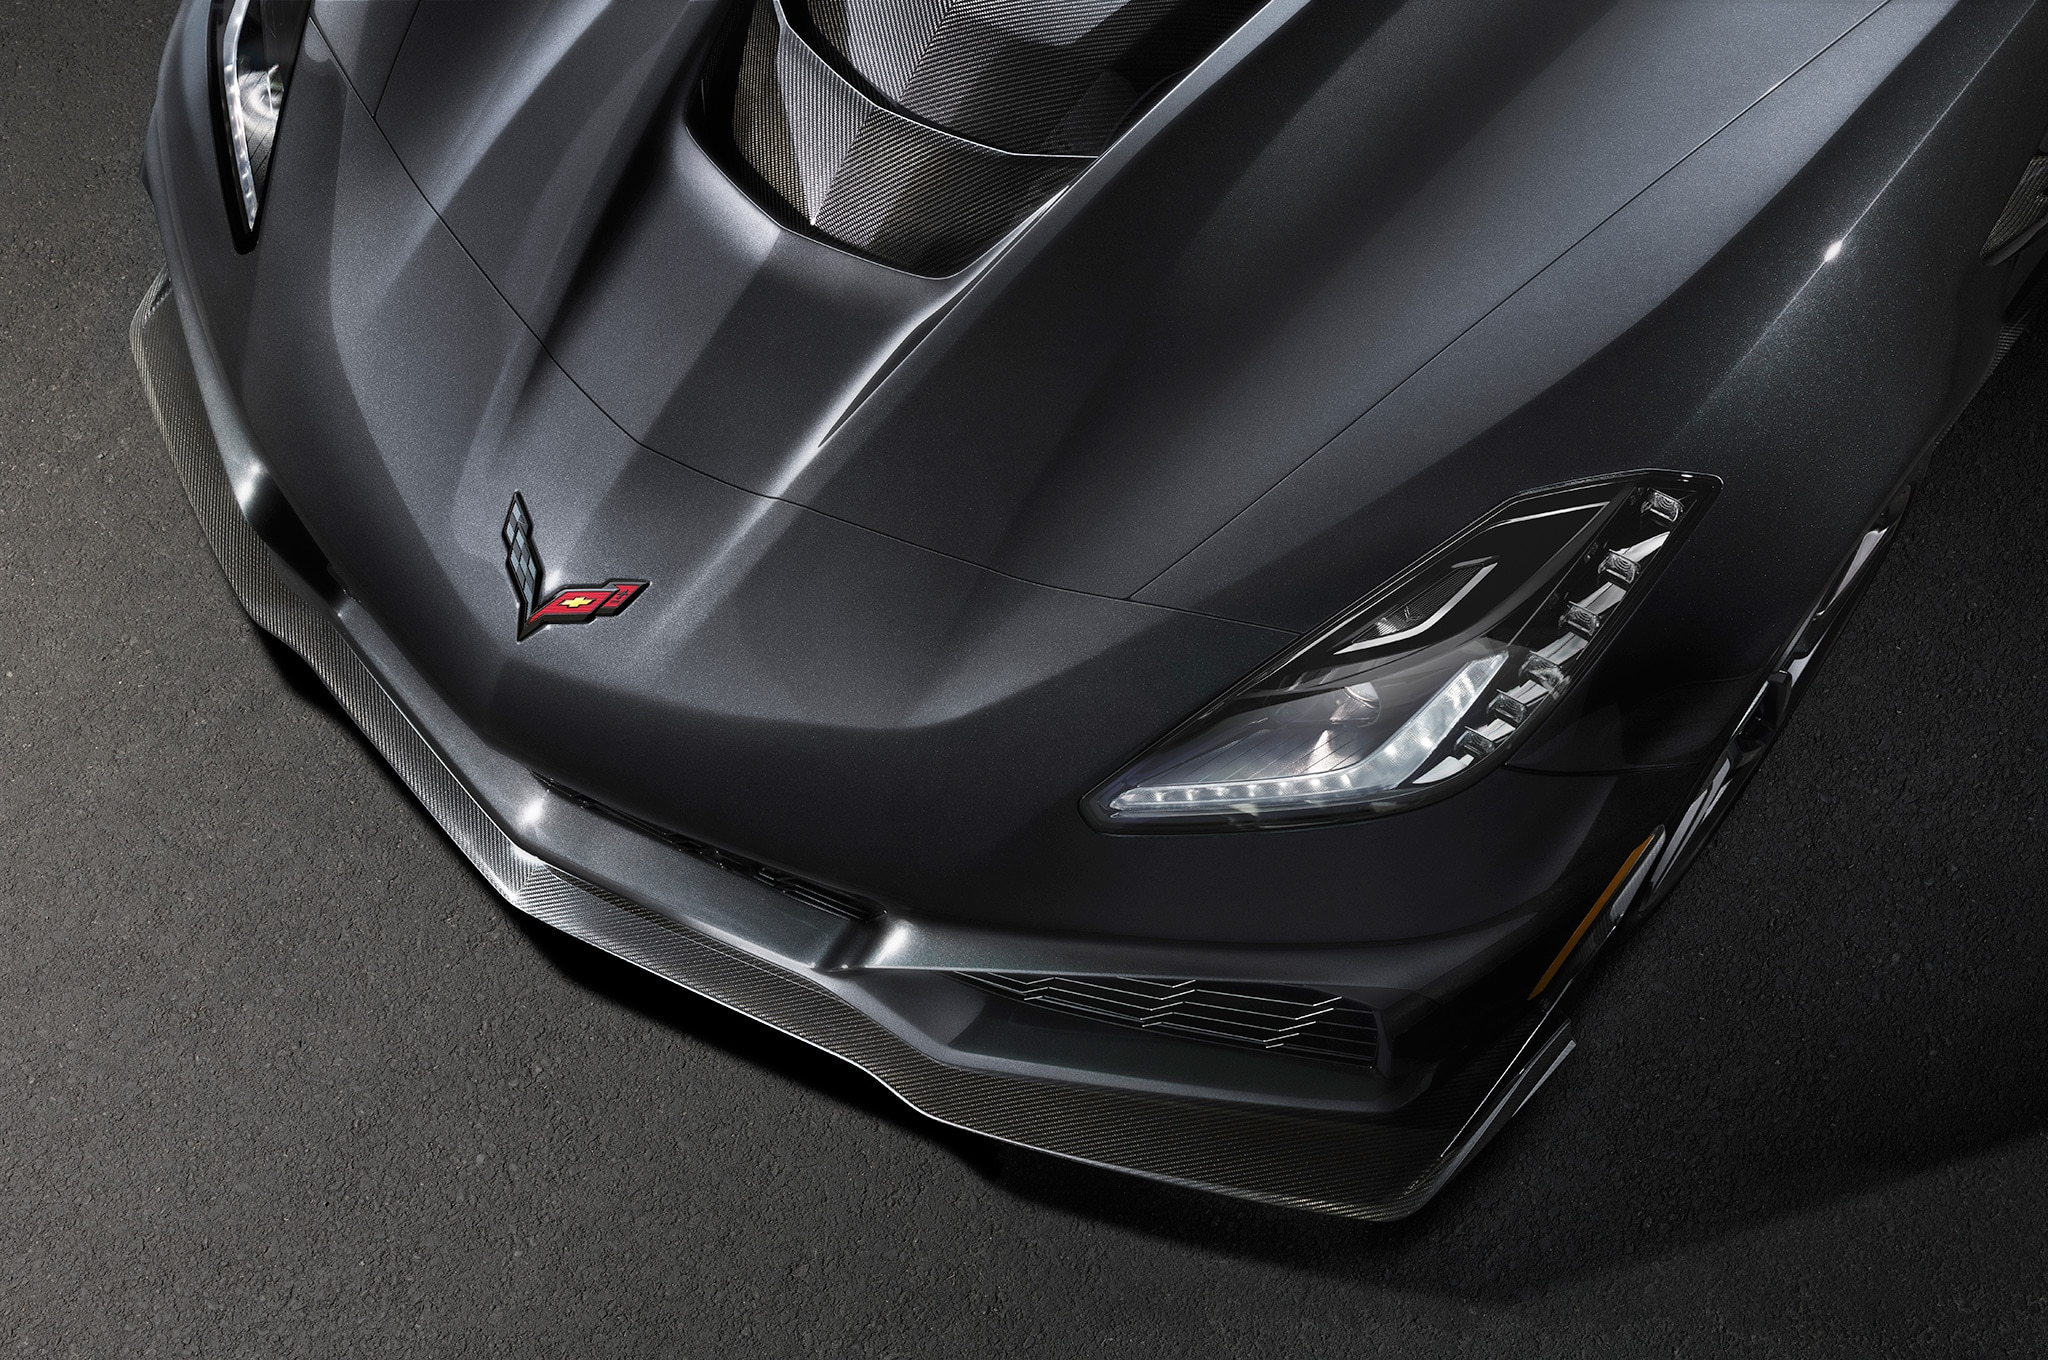 755PS/969Nm making 2019 Chevrolet Corvette ZR1 is here!